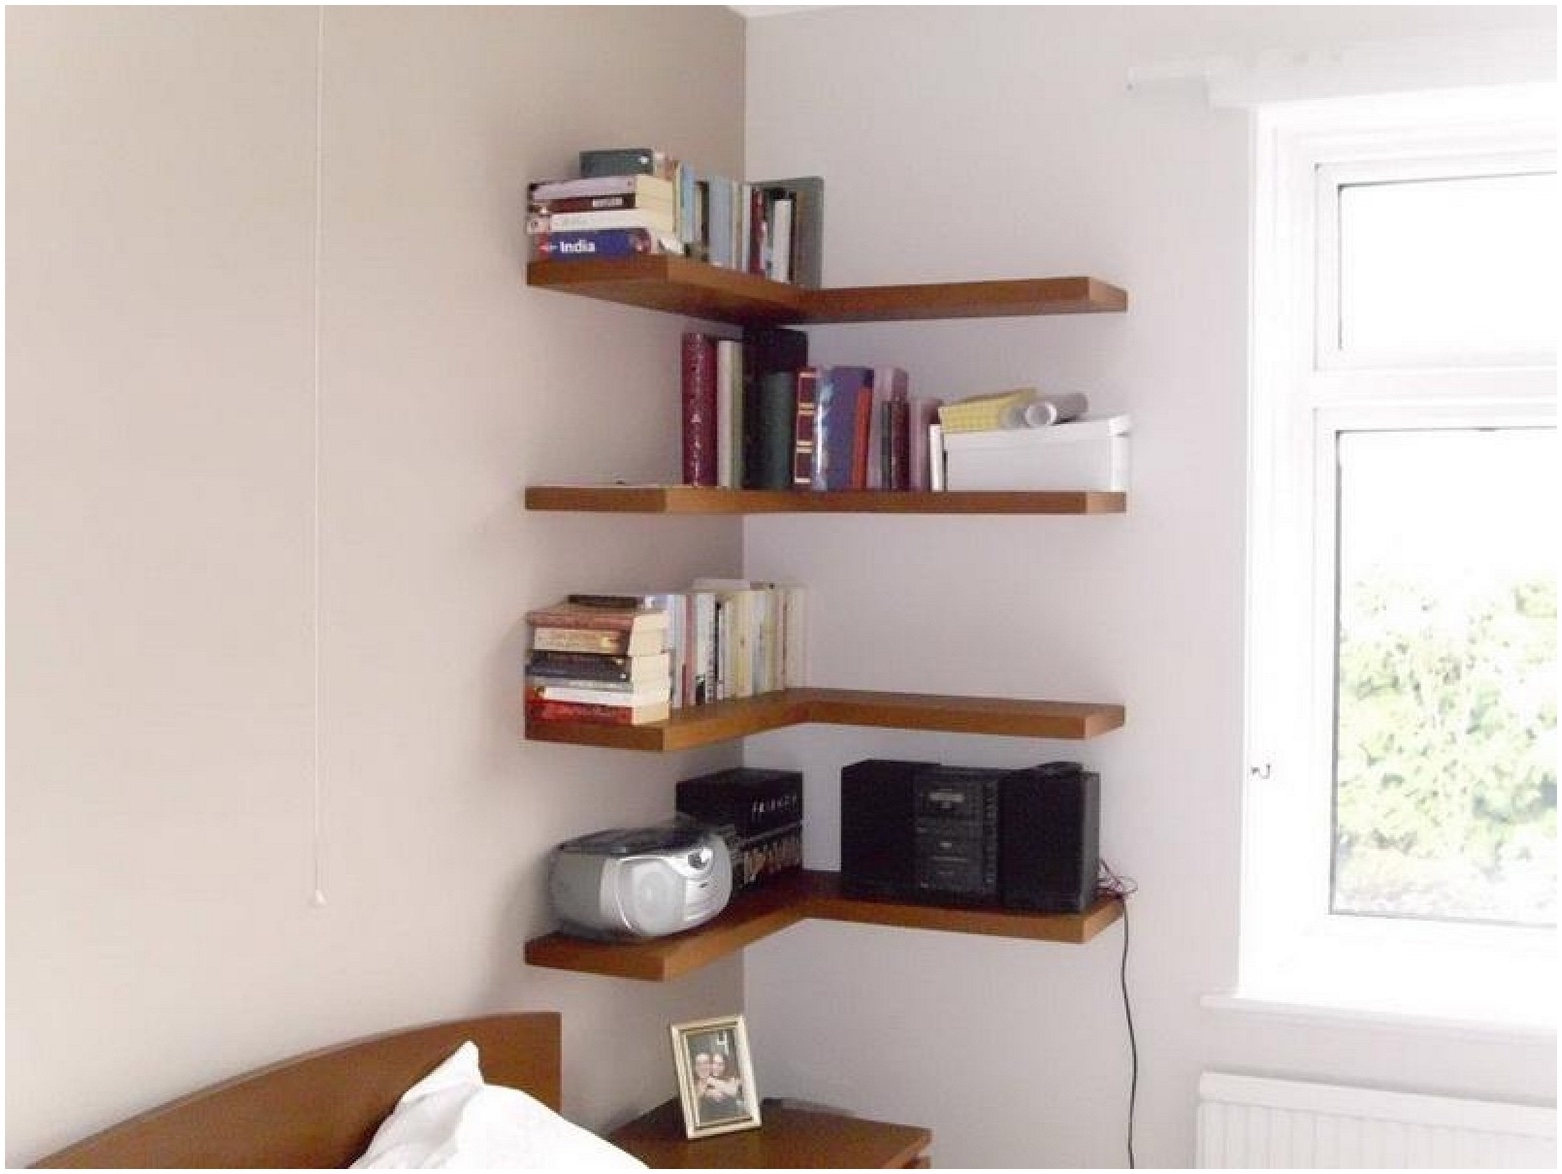 15 Photo Of Corner Shelf For Dvd Player On Wall